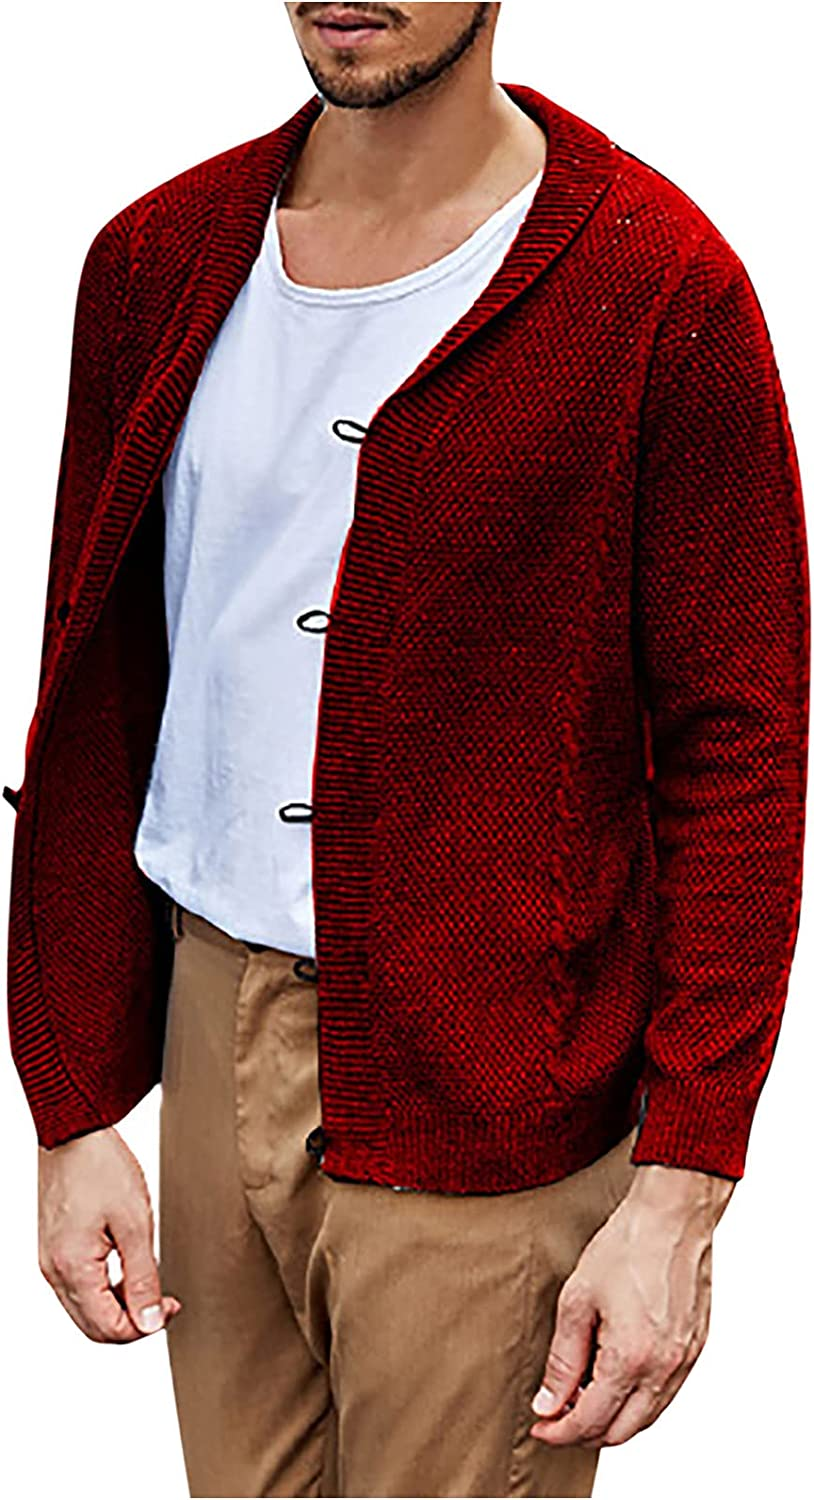 Casual Cardigan Sweater for Men Relaxed Fit V Neck Knitted Buttons Shawl Cardigans